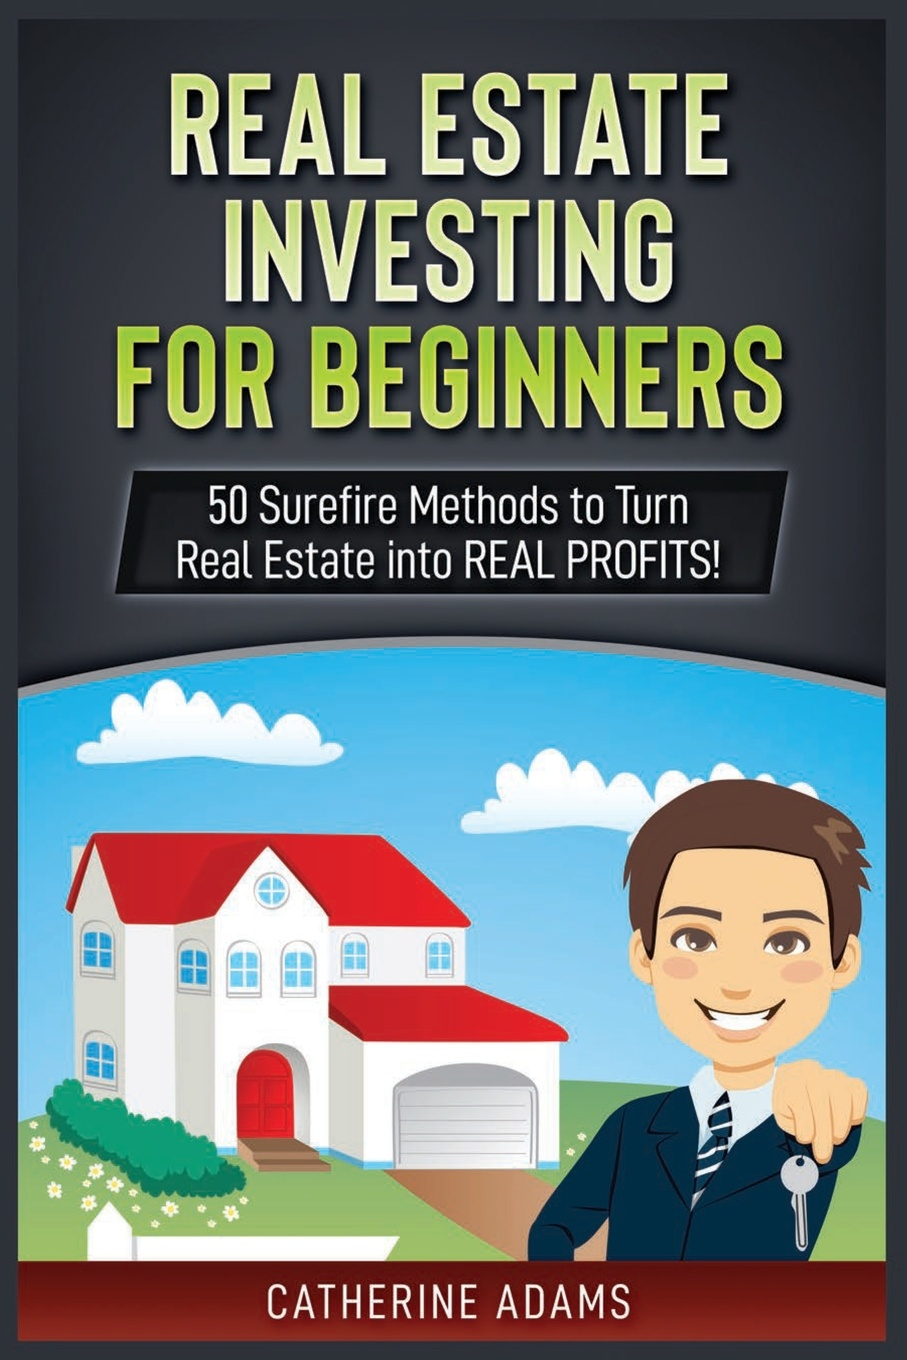 Catherine Adams Real Estate Investing. 50 Surefire Methods to Turn Real Estate into REAL PROFITS! bill carey the all new real estate foreclosure short selling underwater property auction positive cash flow book your ultimate guide to making money in a crashing market